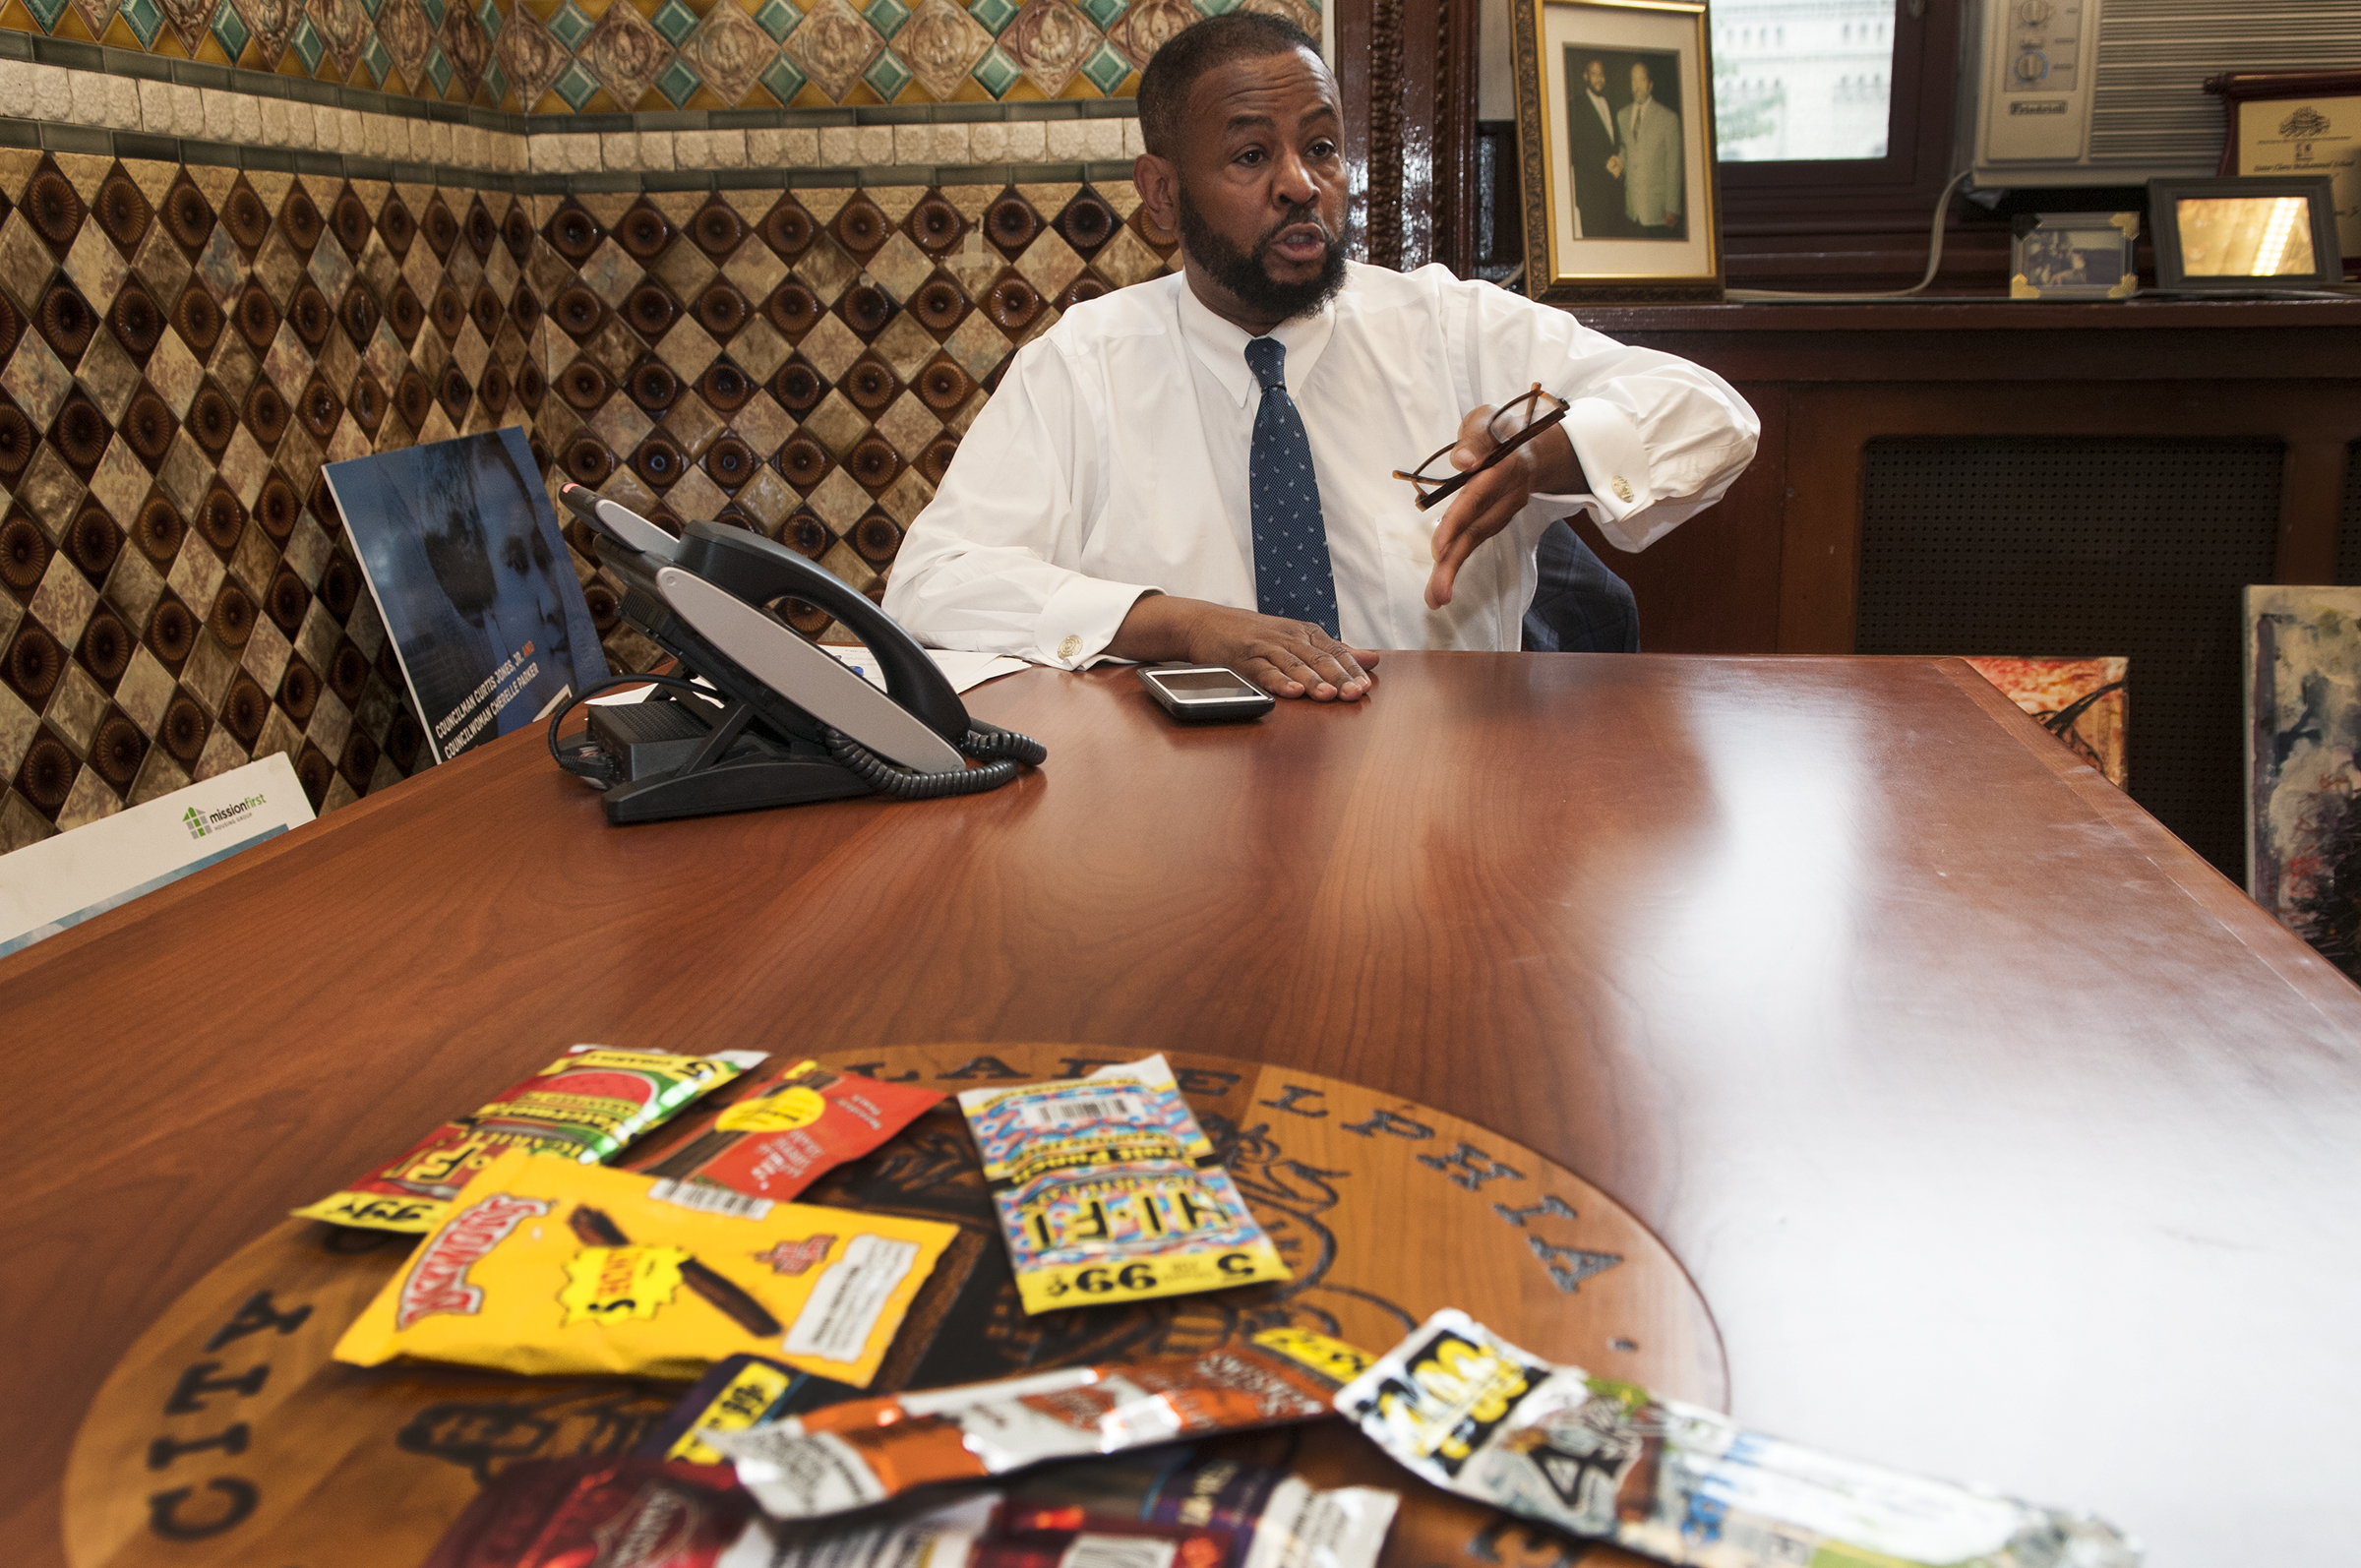 Councilman Curtis Jones talking about the packaging of Cigarillos which is designed to look like candy Councilman Curtis Jones office Philadelphia City Hall 15th and Market Street Philadelphia Pa October 11, 2017 ( RAYMOND W HOLMAN JR / For the Philadelphia Inquirer )